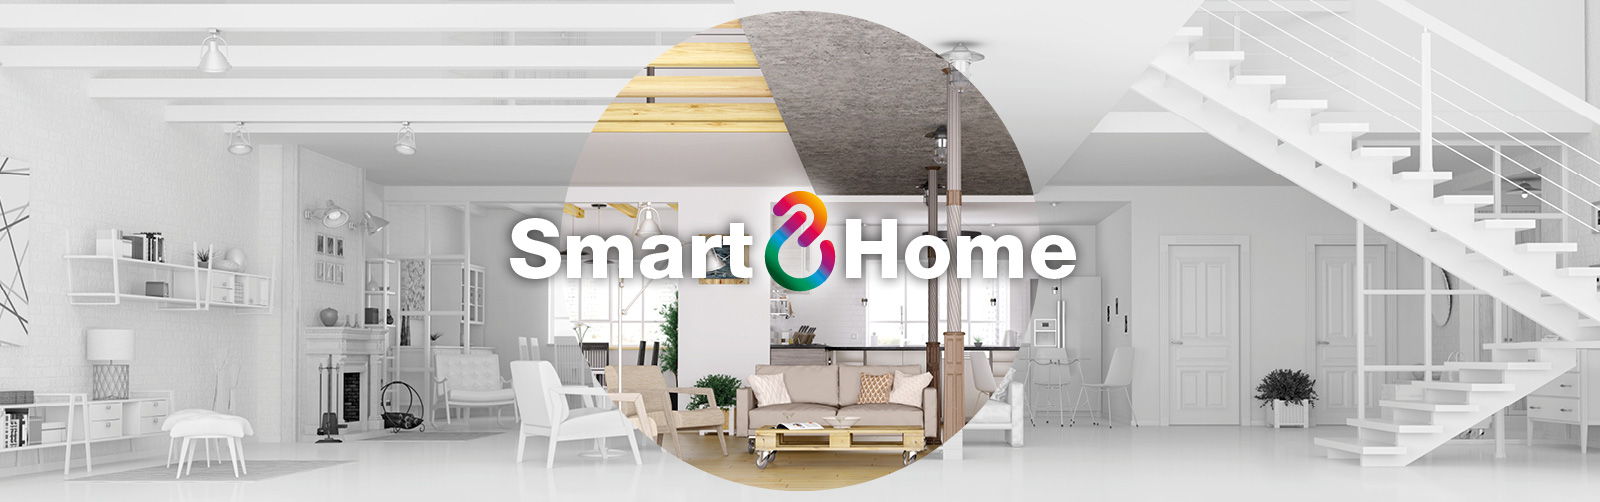 Smart-at-Home_Visual_V4_web.jpg